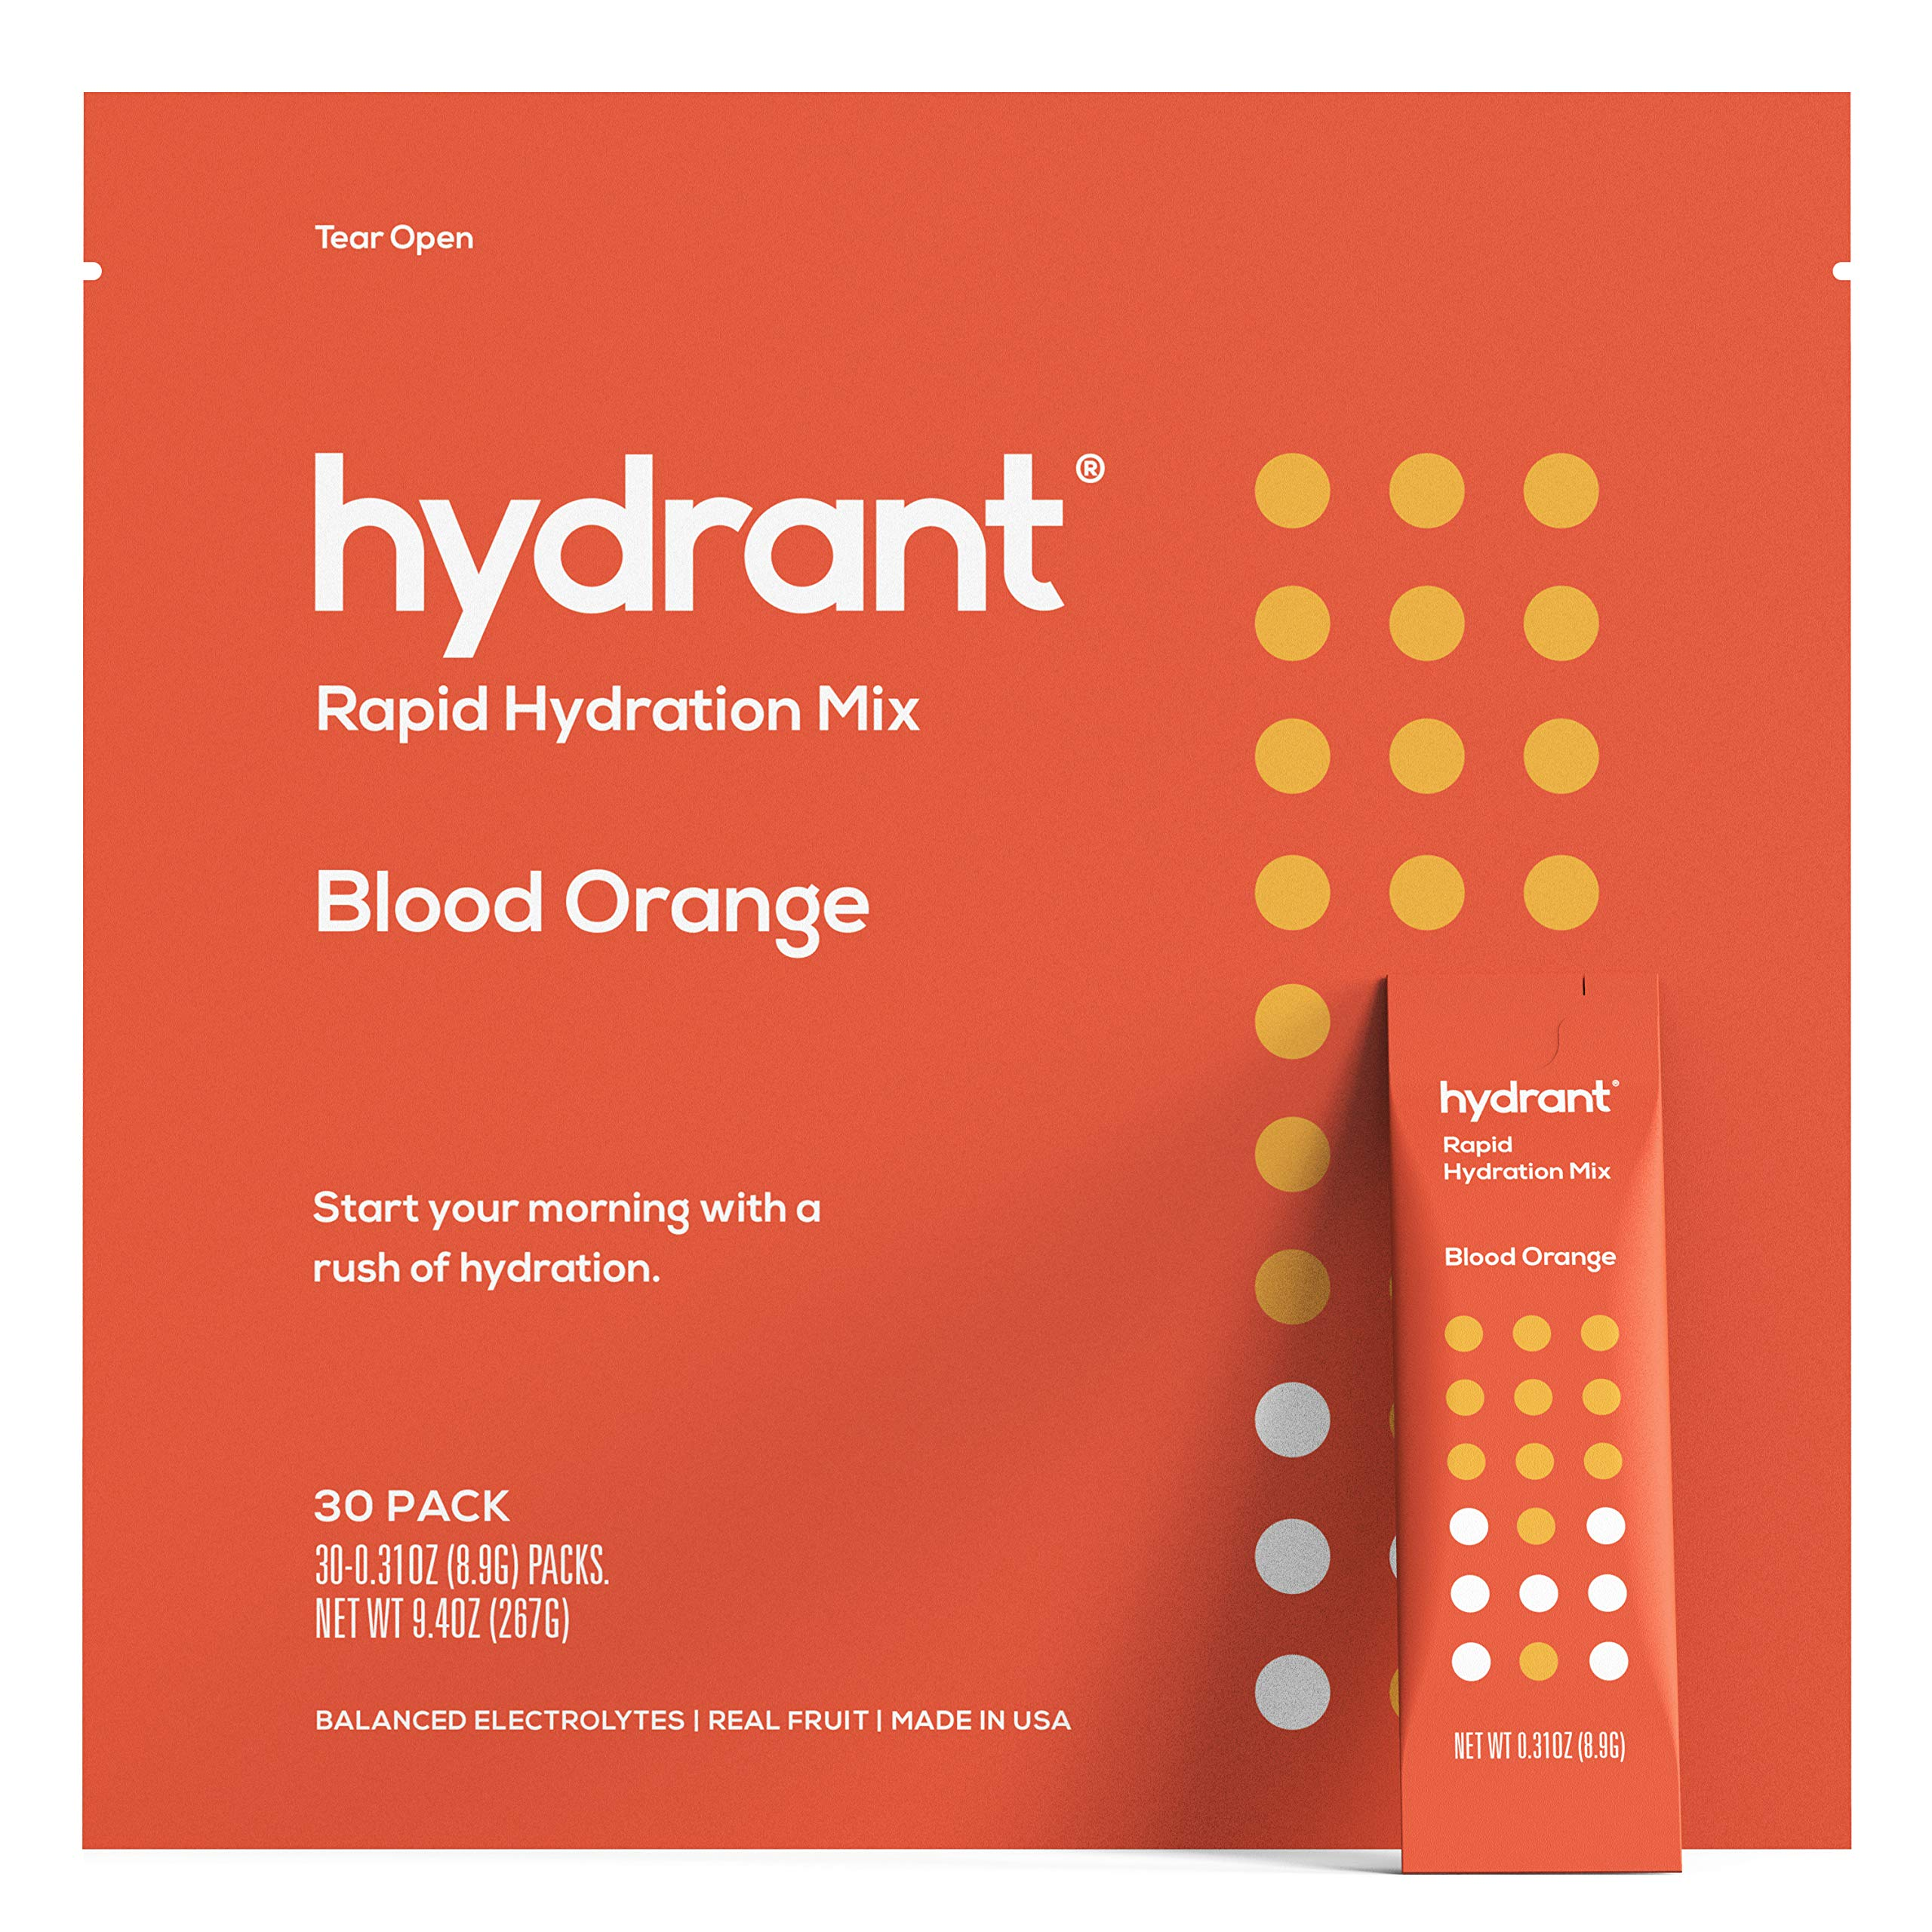 Hydrant Blood Orange Rapid Hydration Mix Version 2 | Electrolyte Powder | Dehydration Recovery Drink Blend | Simple Ingredients | Vegan | 30pk by HYDRANT